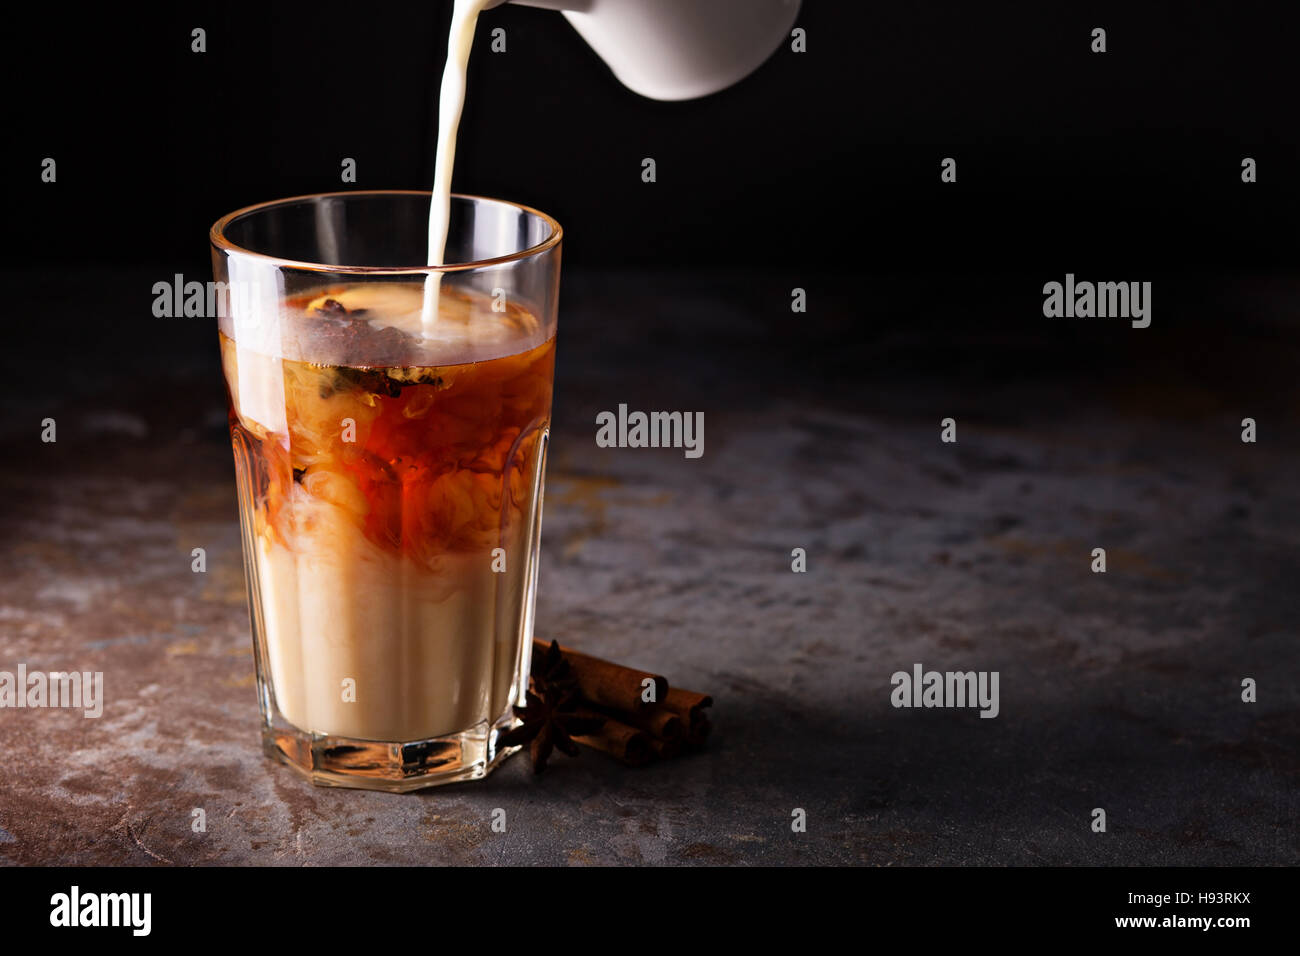 Hot masala tea with milk - Stock Image